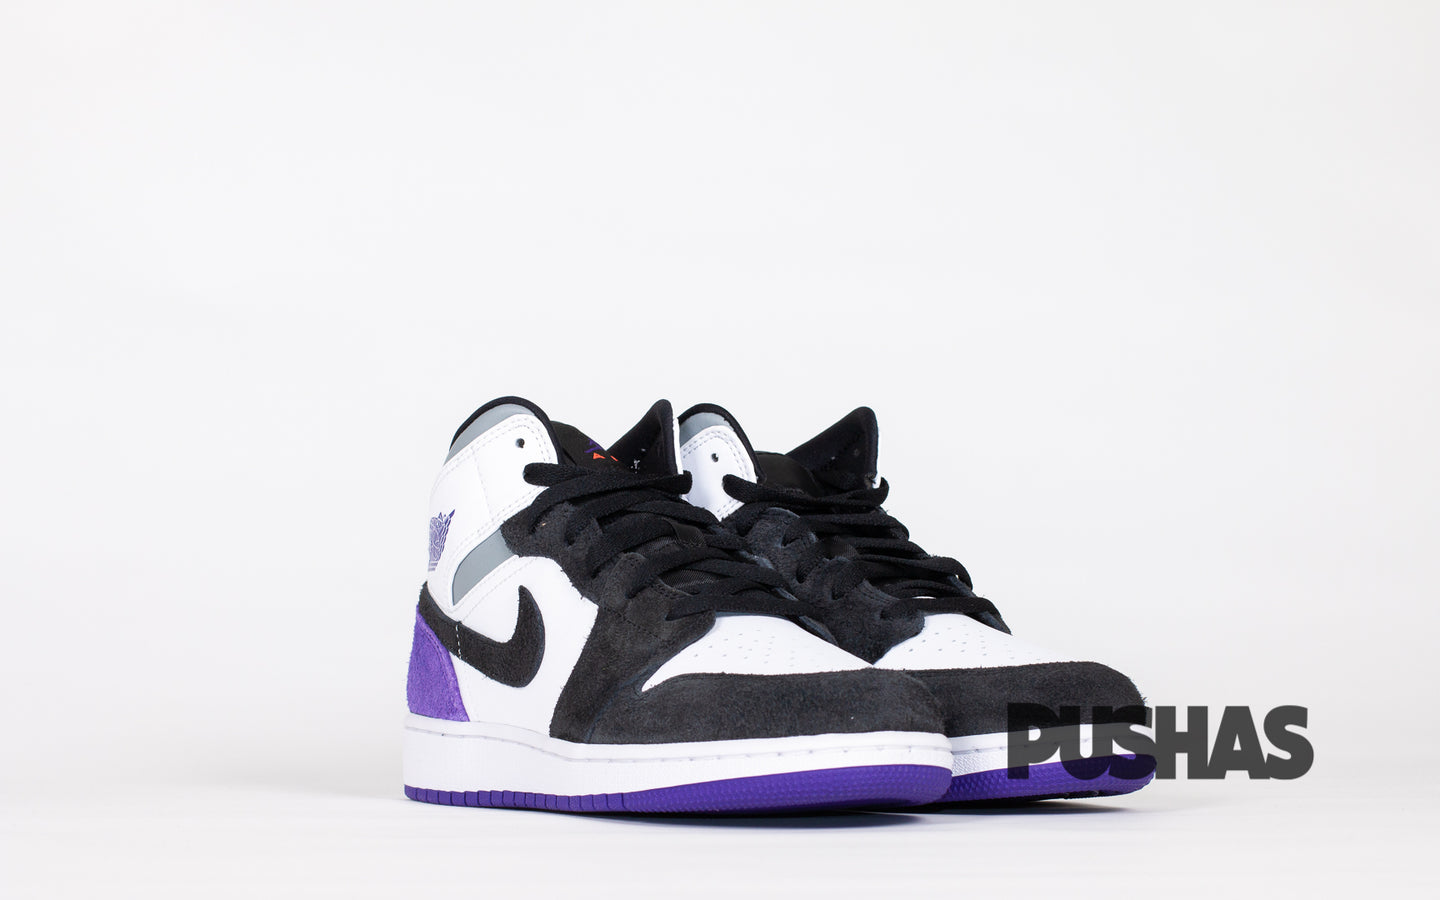 pushas-nike-Air-Jordan-1-Mid-SE-Purple-GS